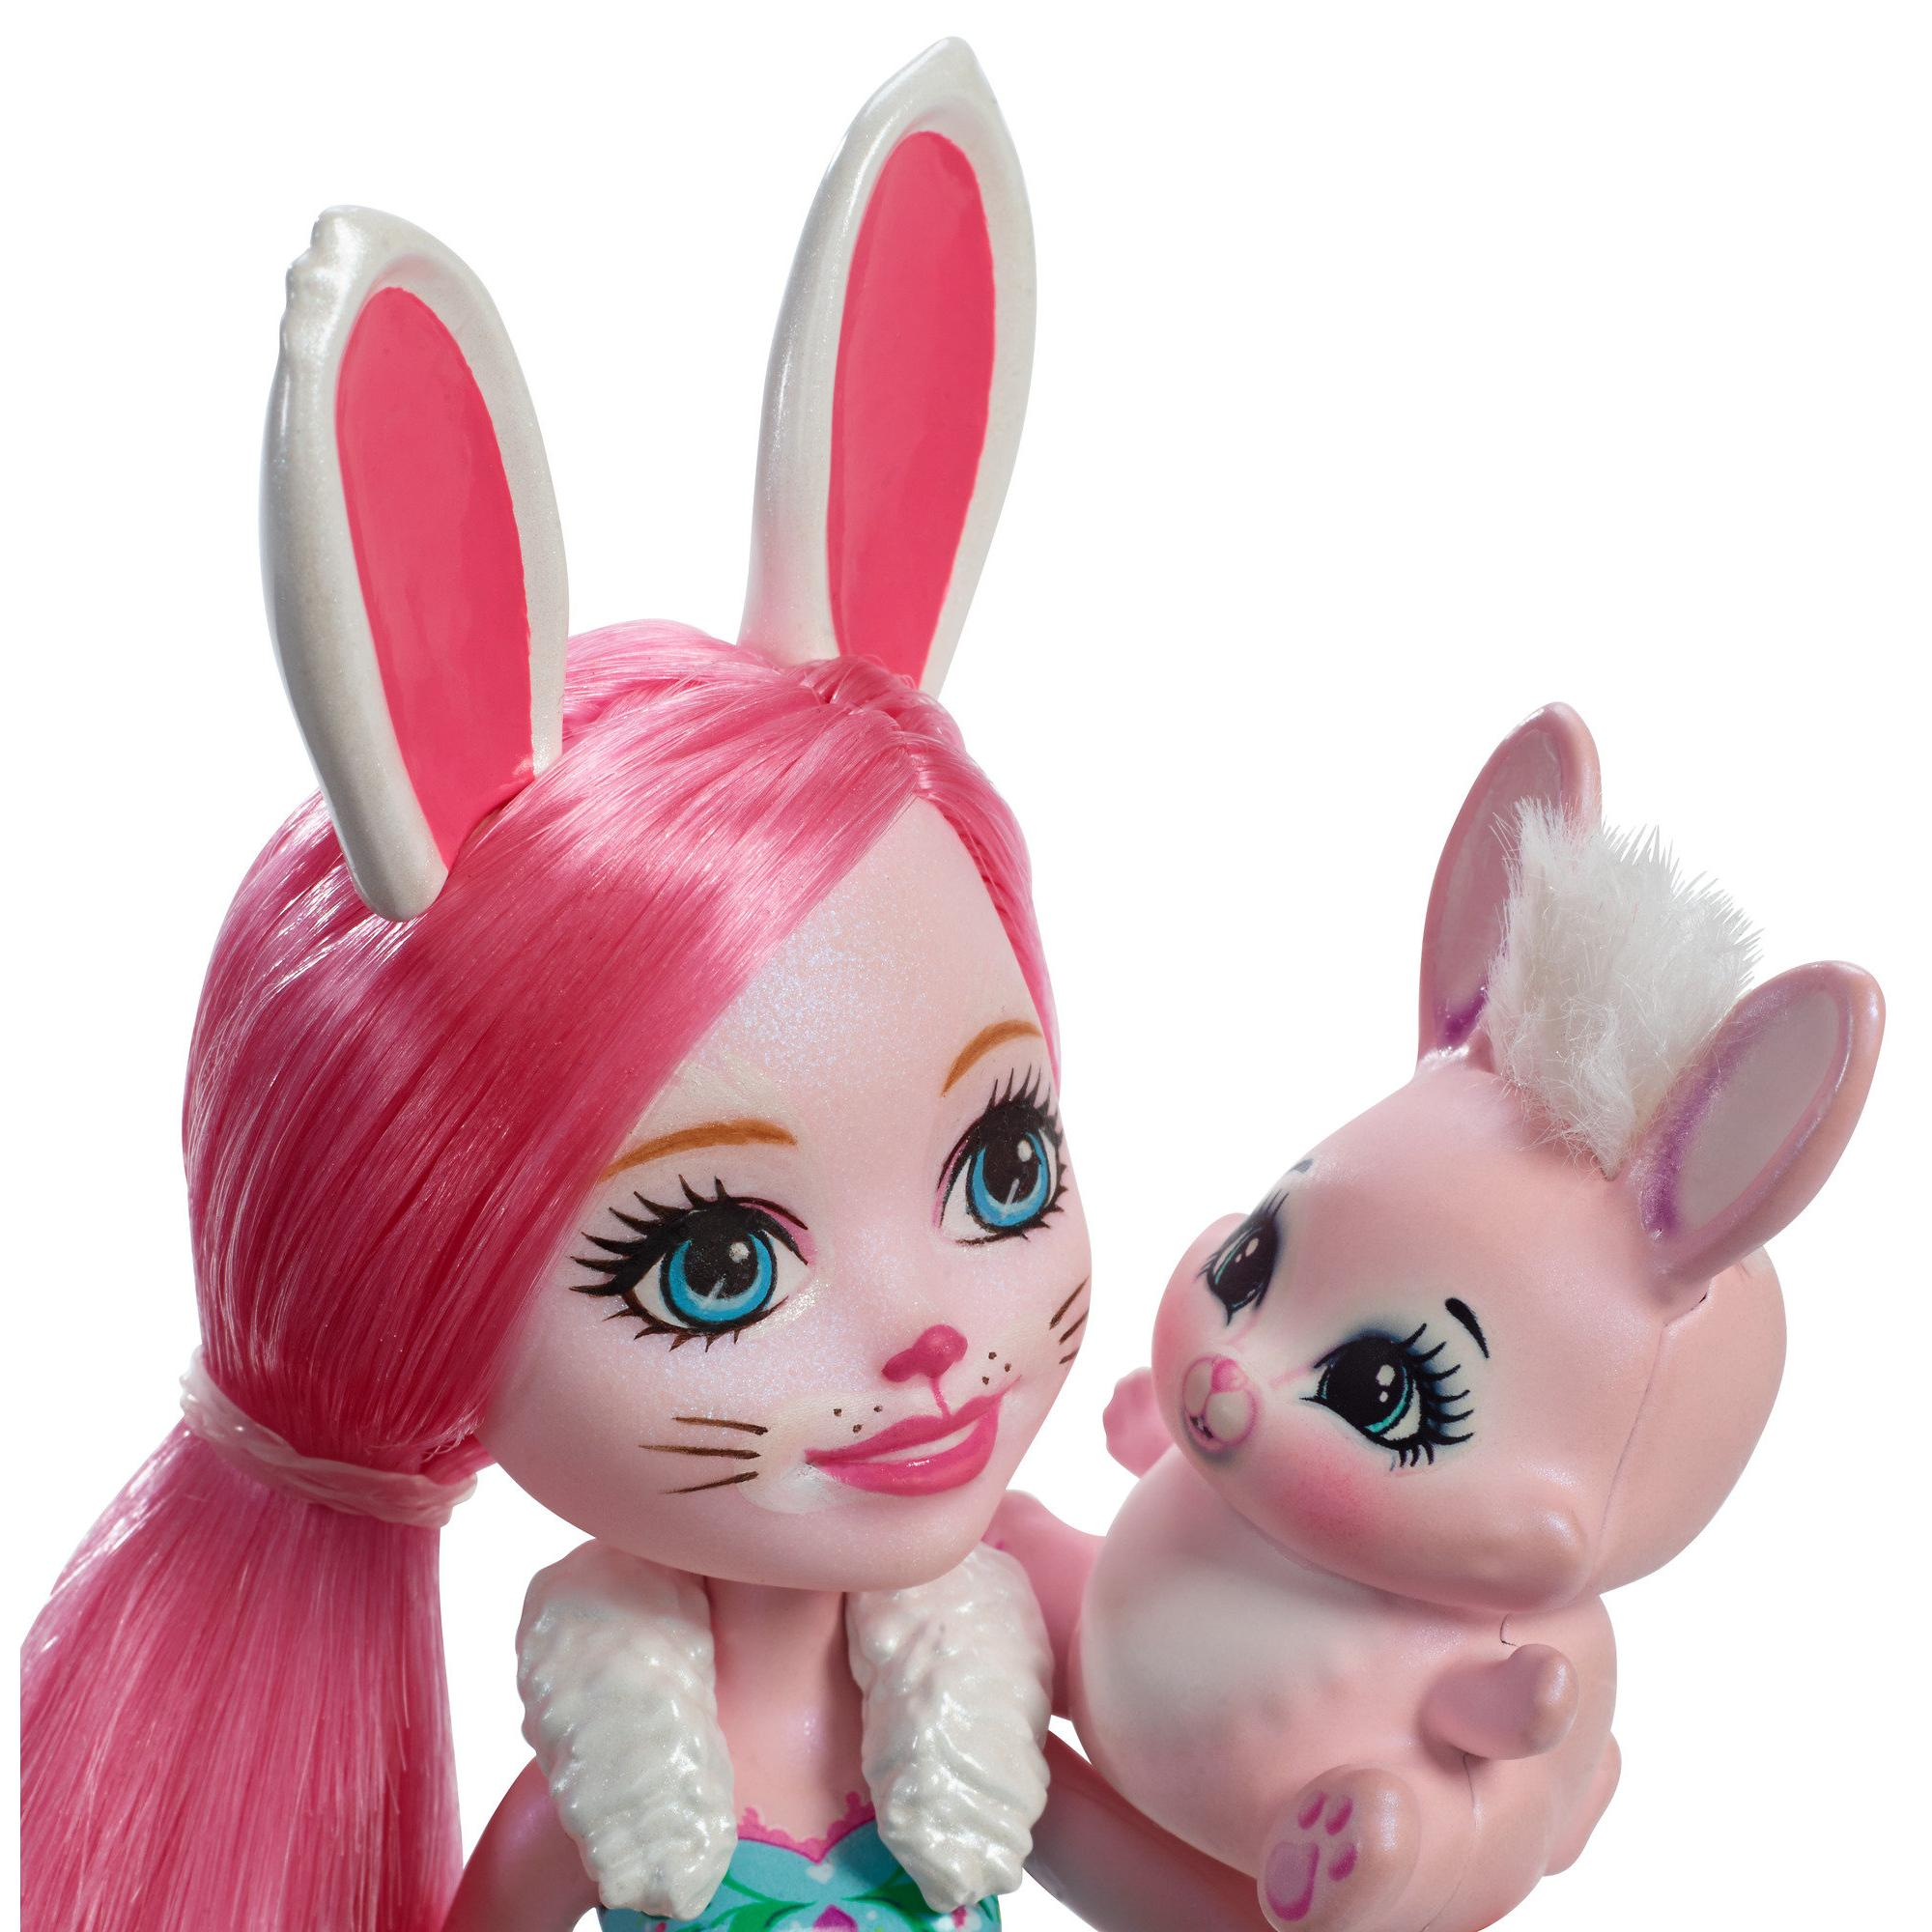 Enchantimals Bree Bunny Doll by Mattel